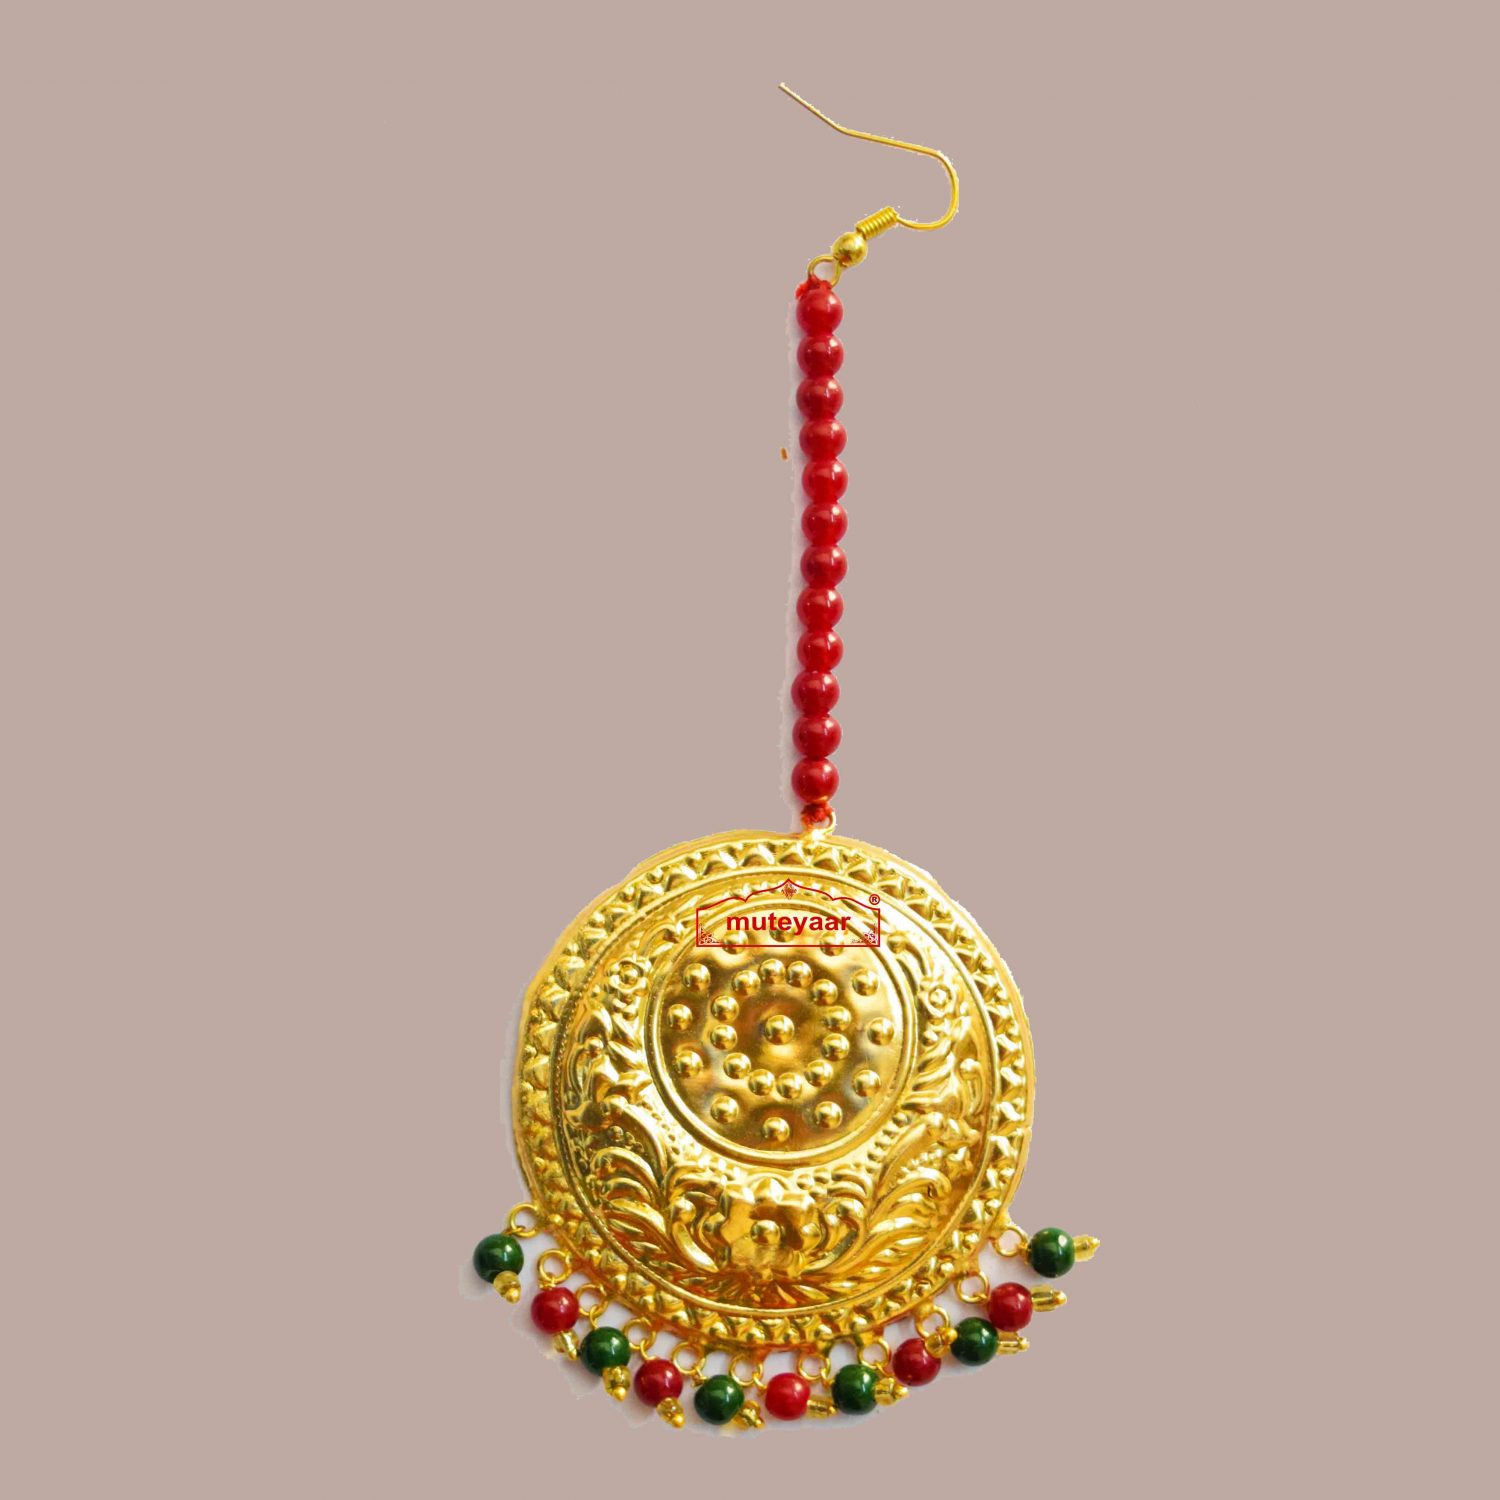 Golden Large Size Tikka Maang Teeka with Maroon Green Beads for giddha and bhangra J0118 1